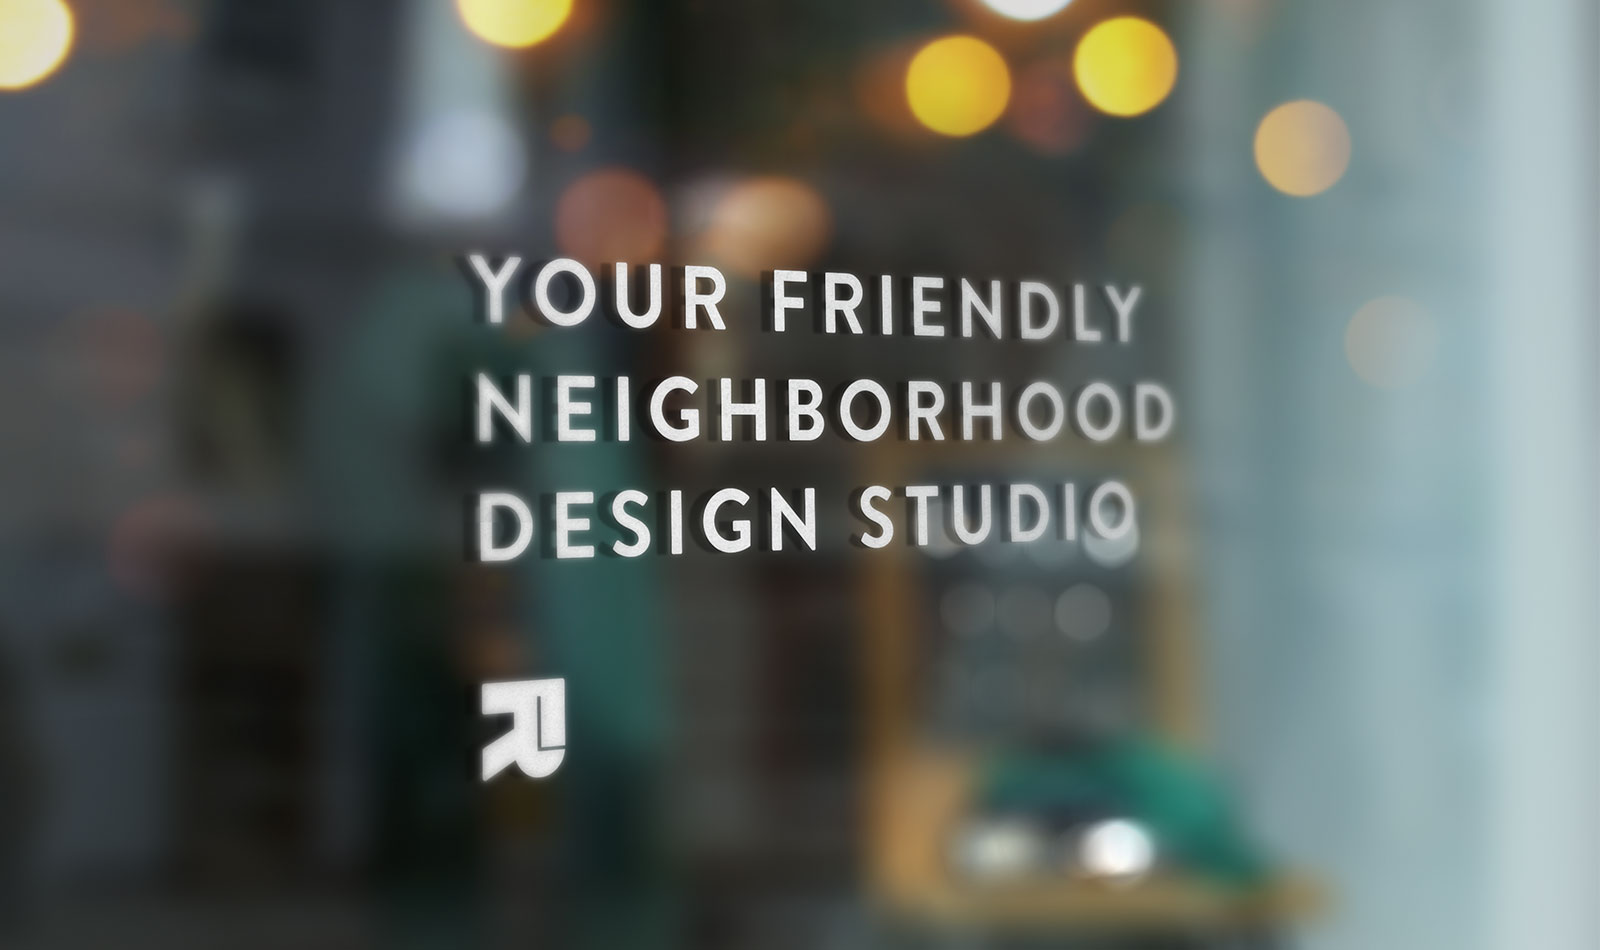 A Friendly Neighborhood Design Studio